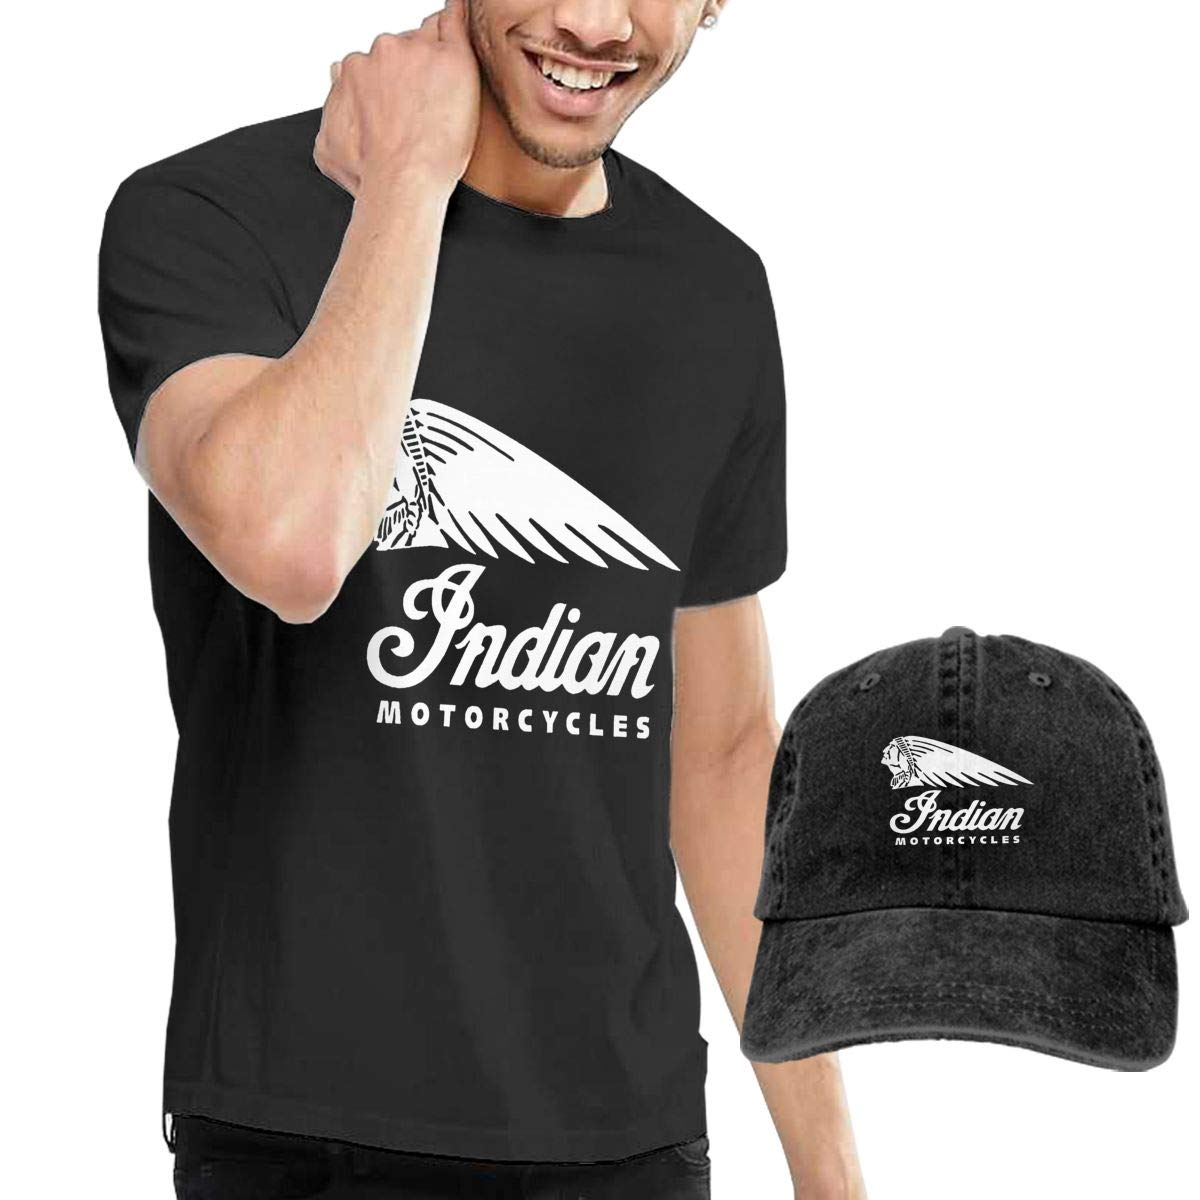 UESEU Indian Motorcycle Logo Top Tee and Indian Motorcycle Logo Strapback Cap for Adult